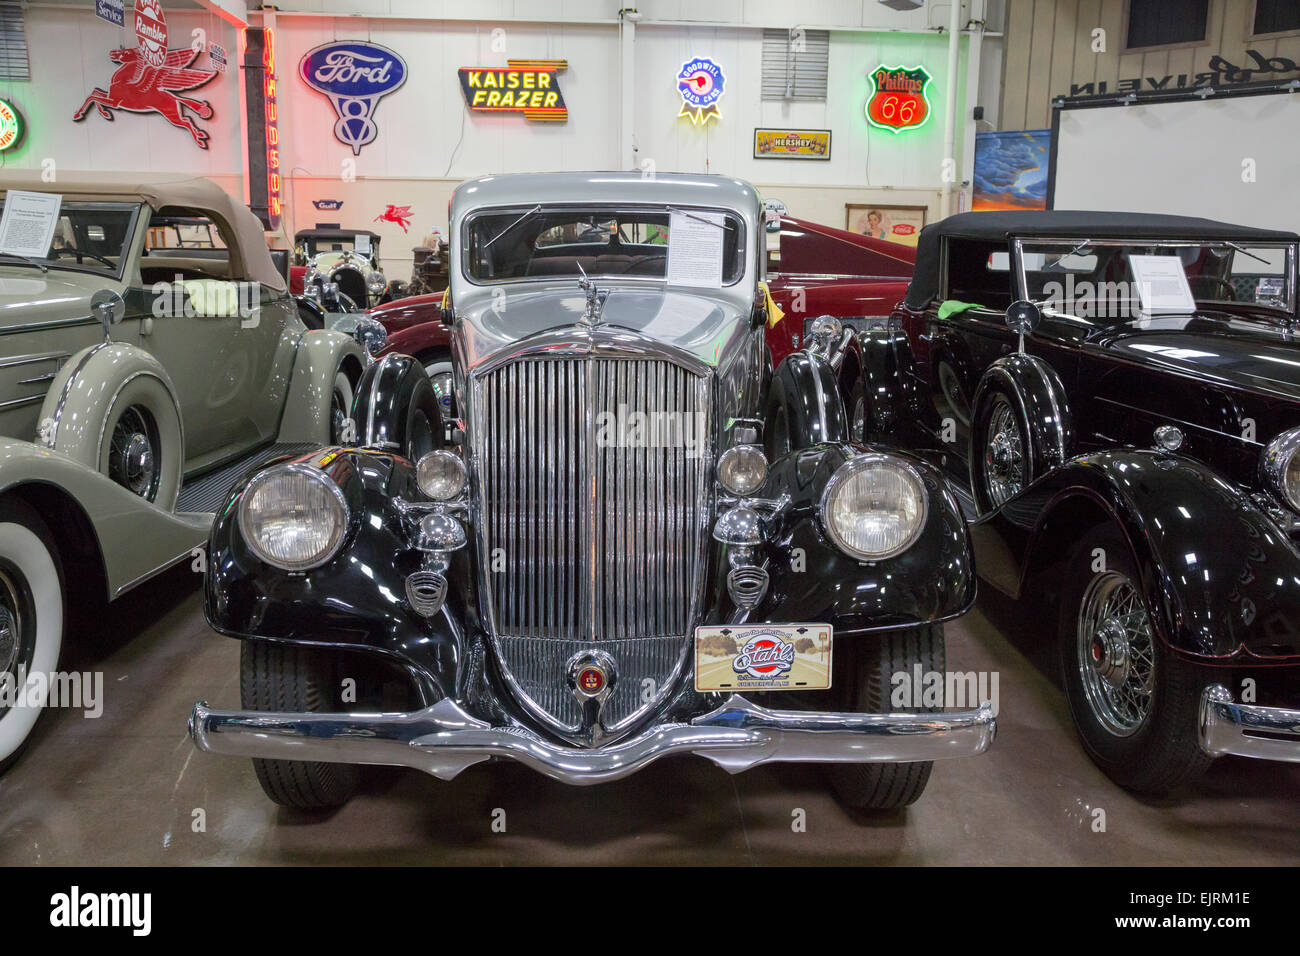 Chesterfield Twp., Michigan - ein 1934 Pierce-Arrow Silver Arrow auf dem Display an Stahl Automotive-Stiftung. Stockbild